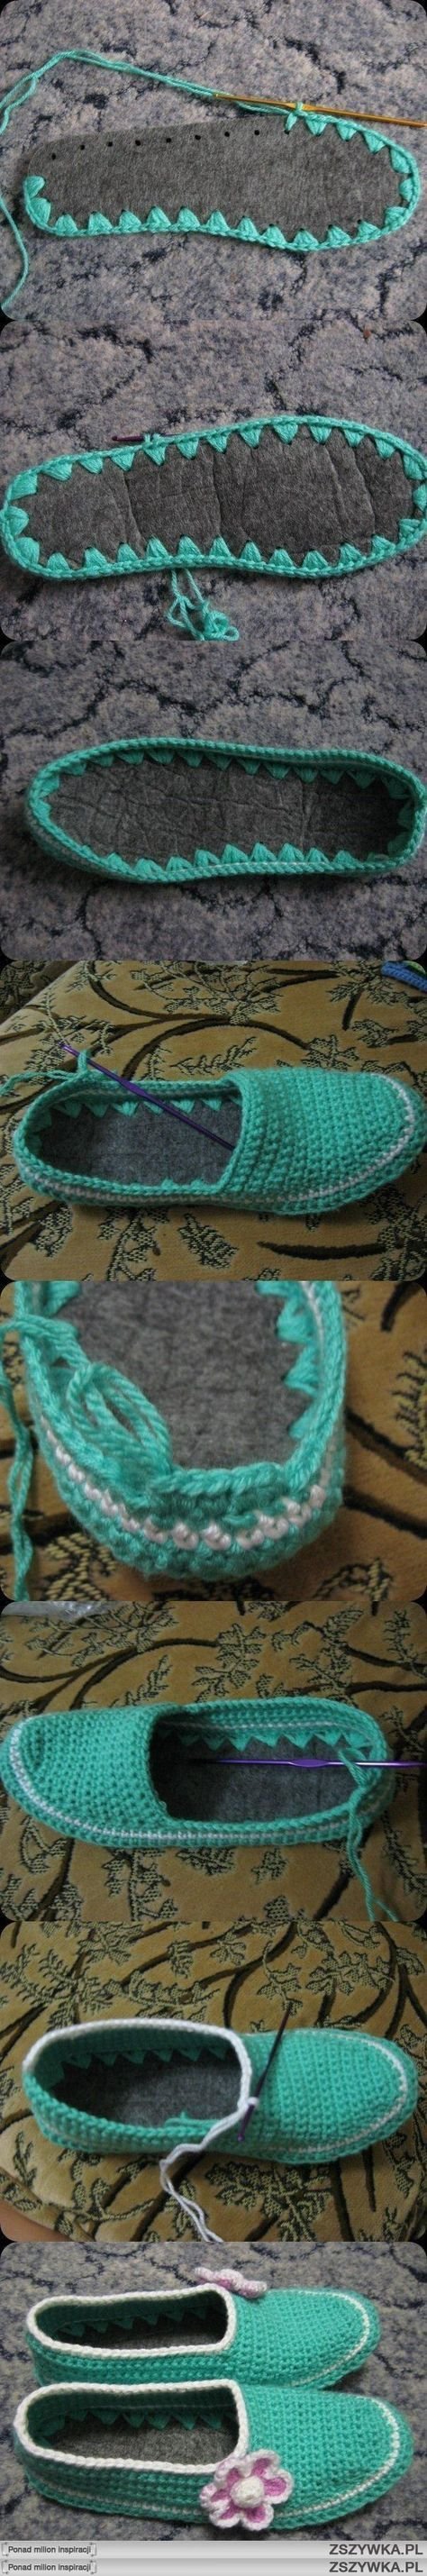 crochet slippers, I have to try these!!! I know a little Bug that may love them.....